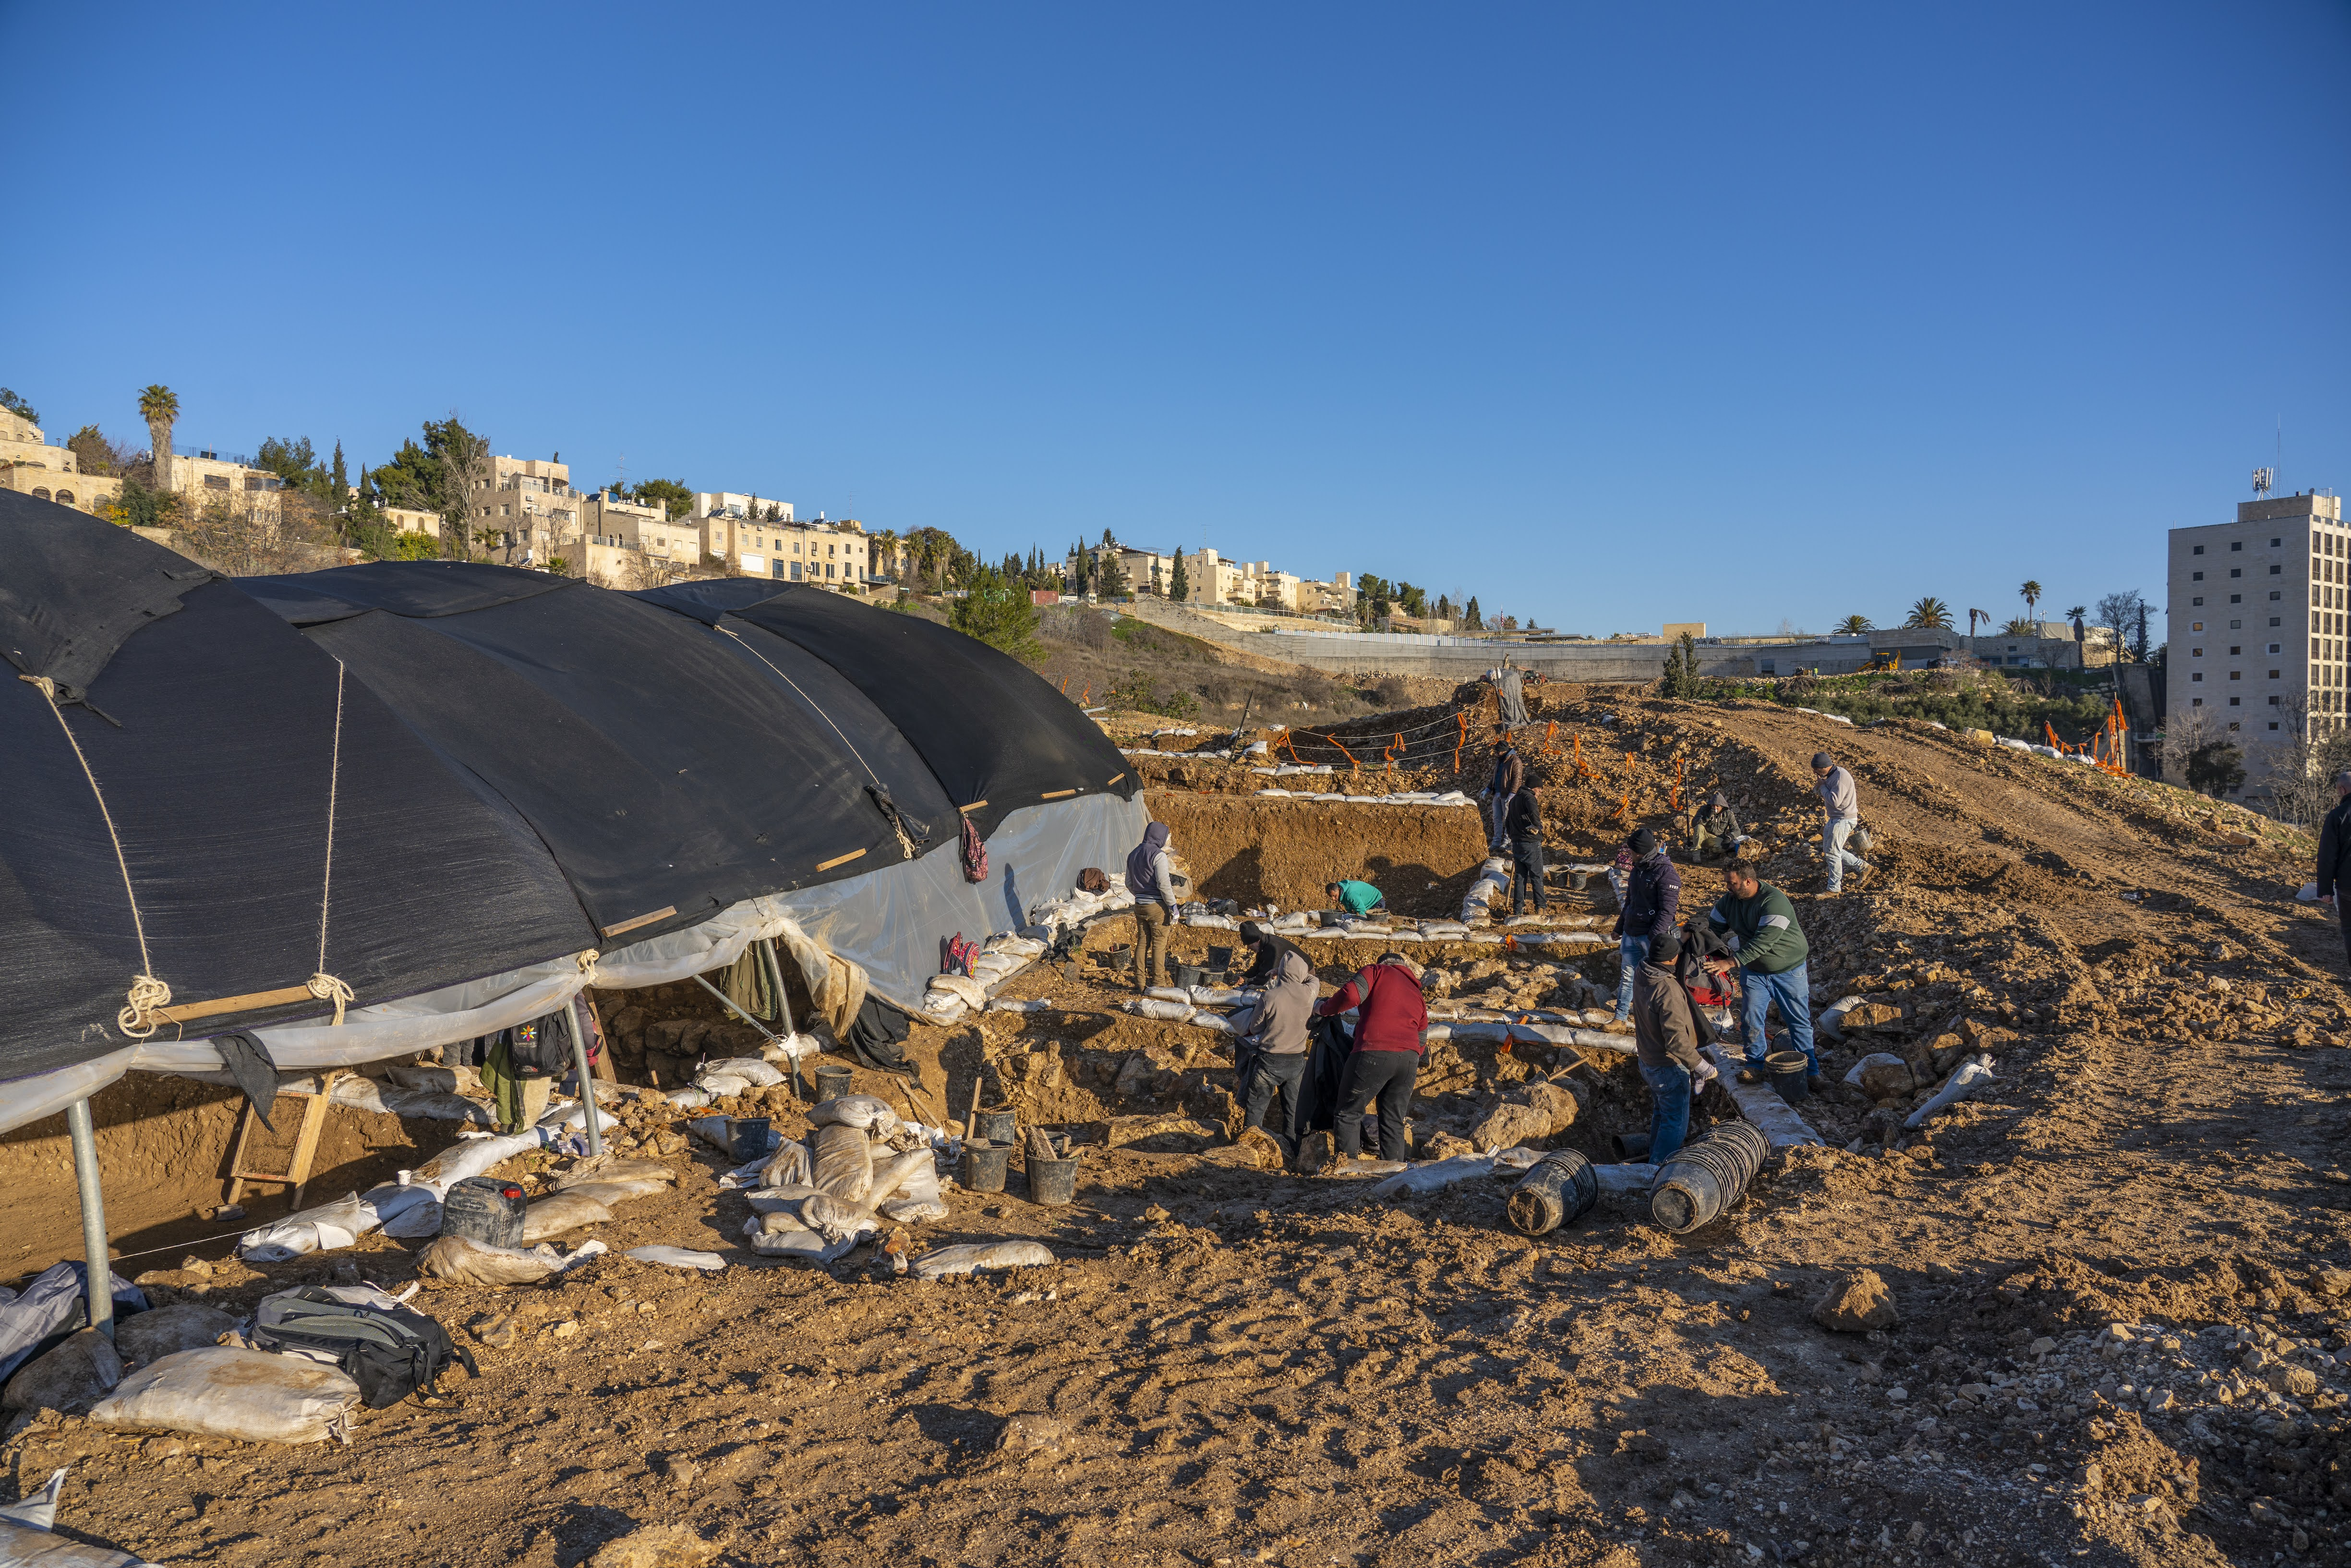 Israel Antiquities Authority Excavation on the Slopes of Arnona